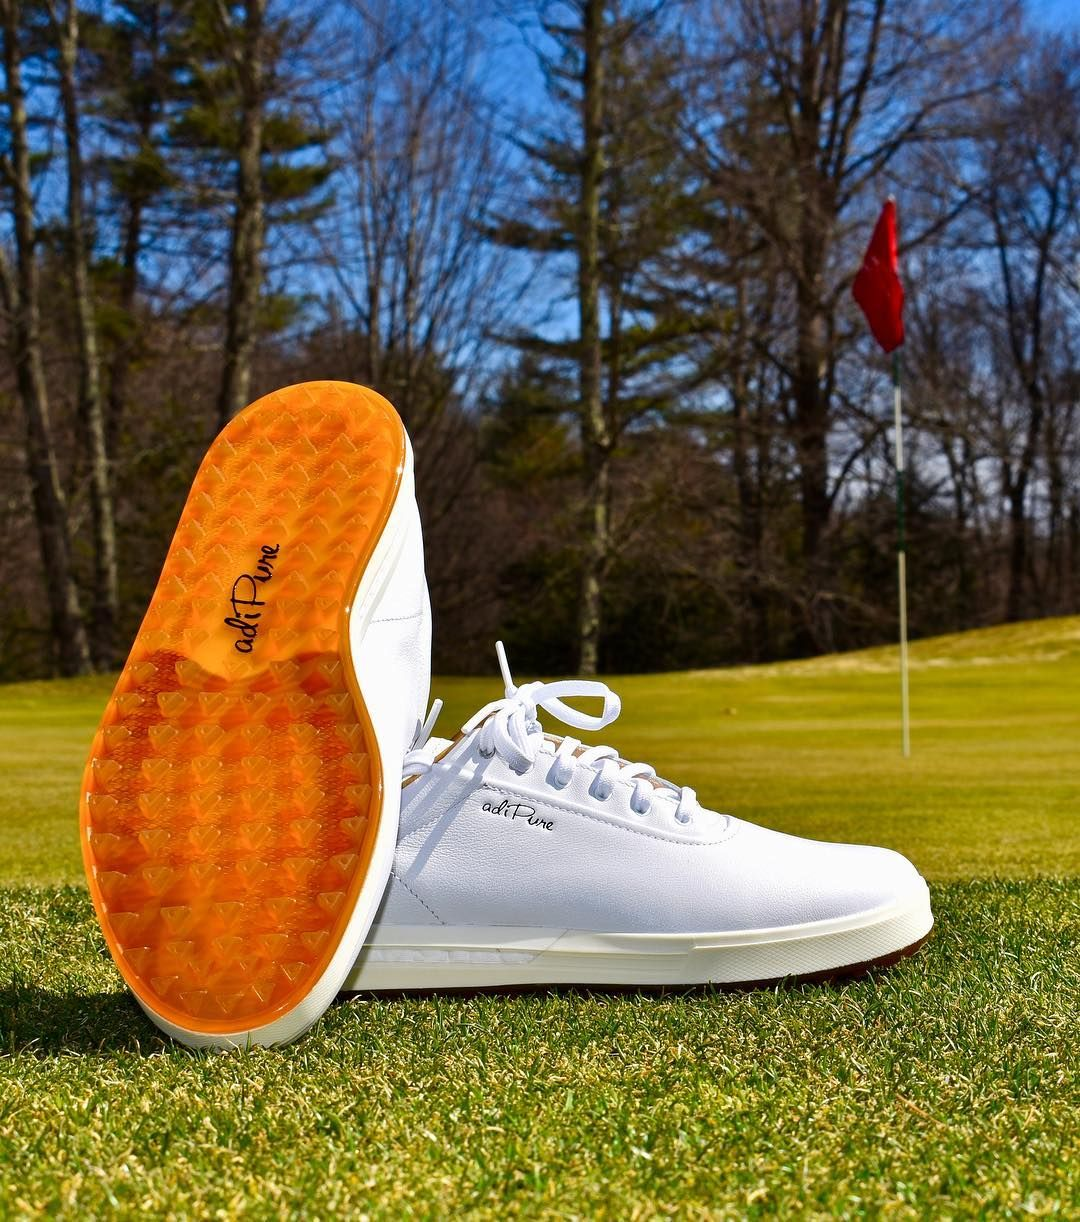 the latest 028f5 ccef1 One of the cleanest looking onoff course golf shoes Ive seenthe Adidas  Adipure SP shoes in Cloud White